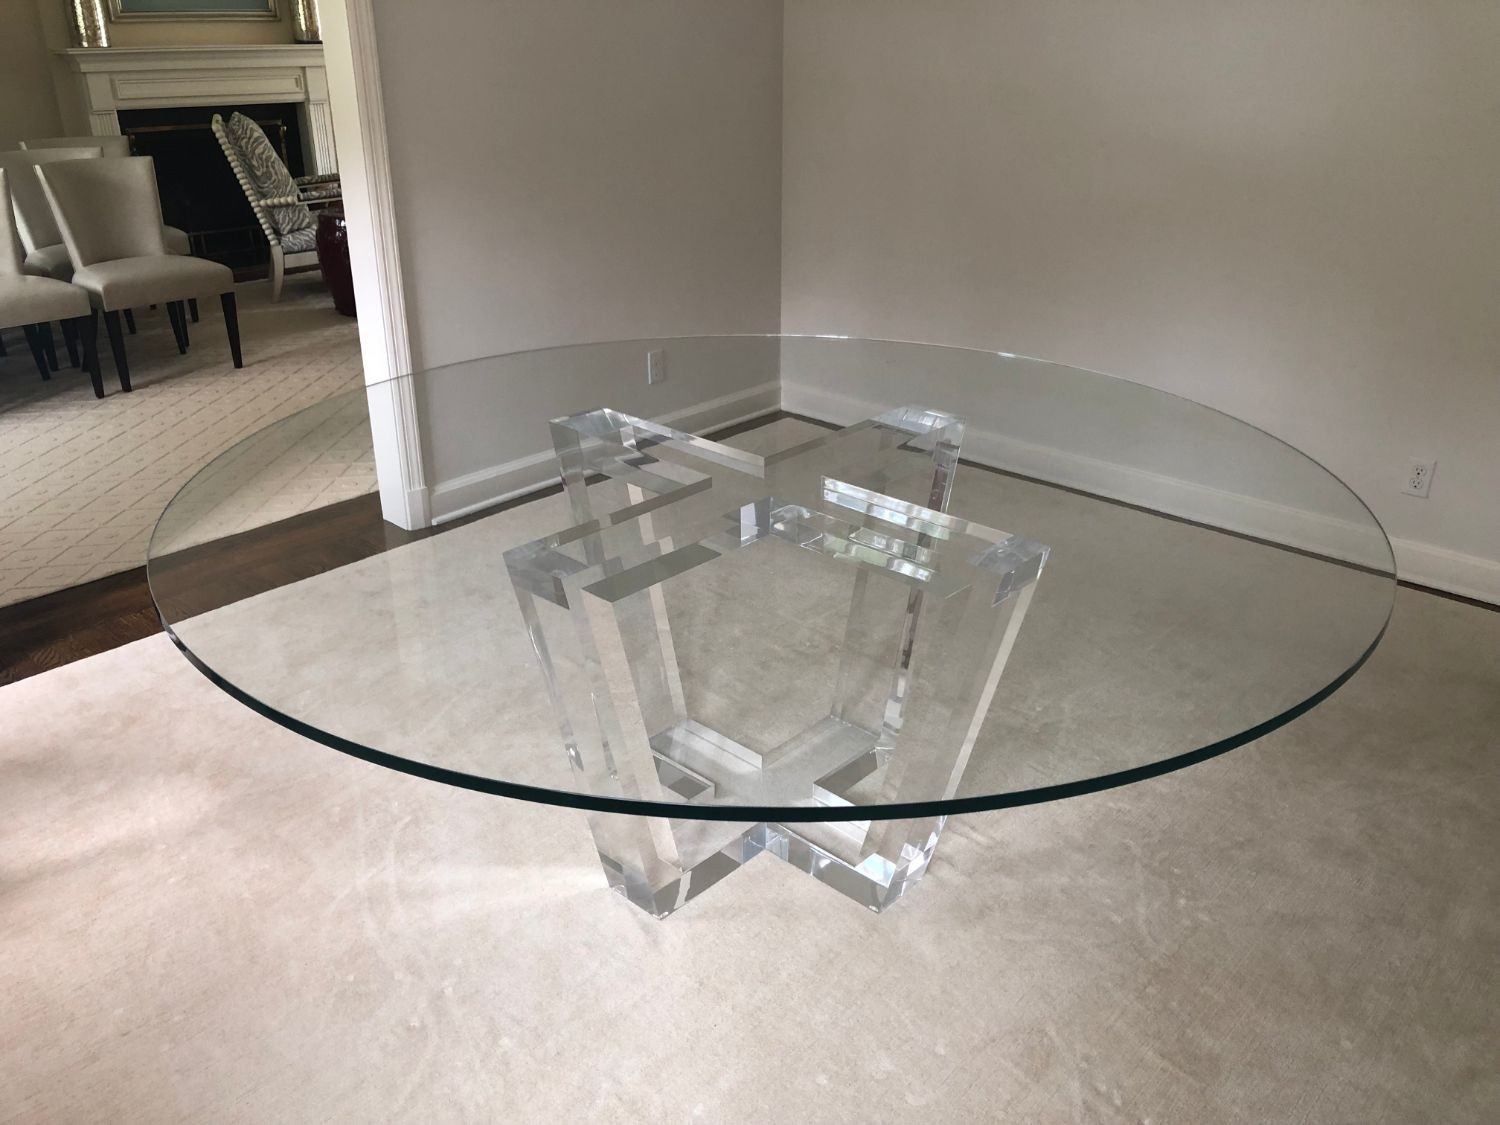 allan knight del ray lucite and glass dining table